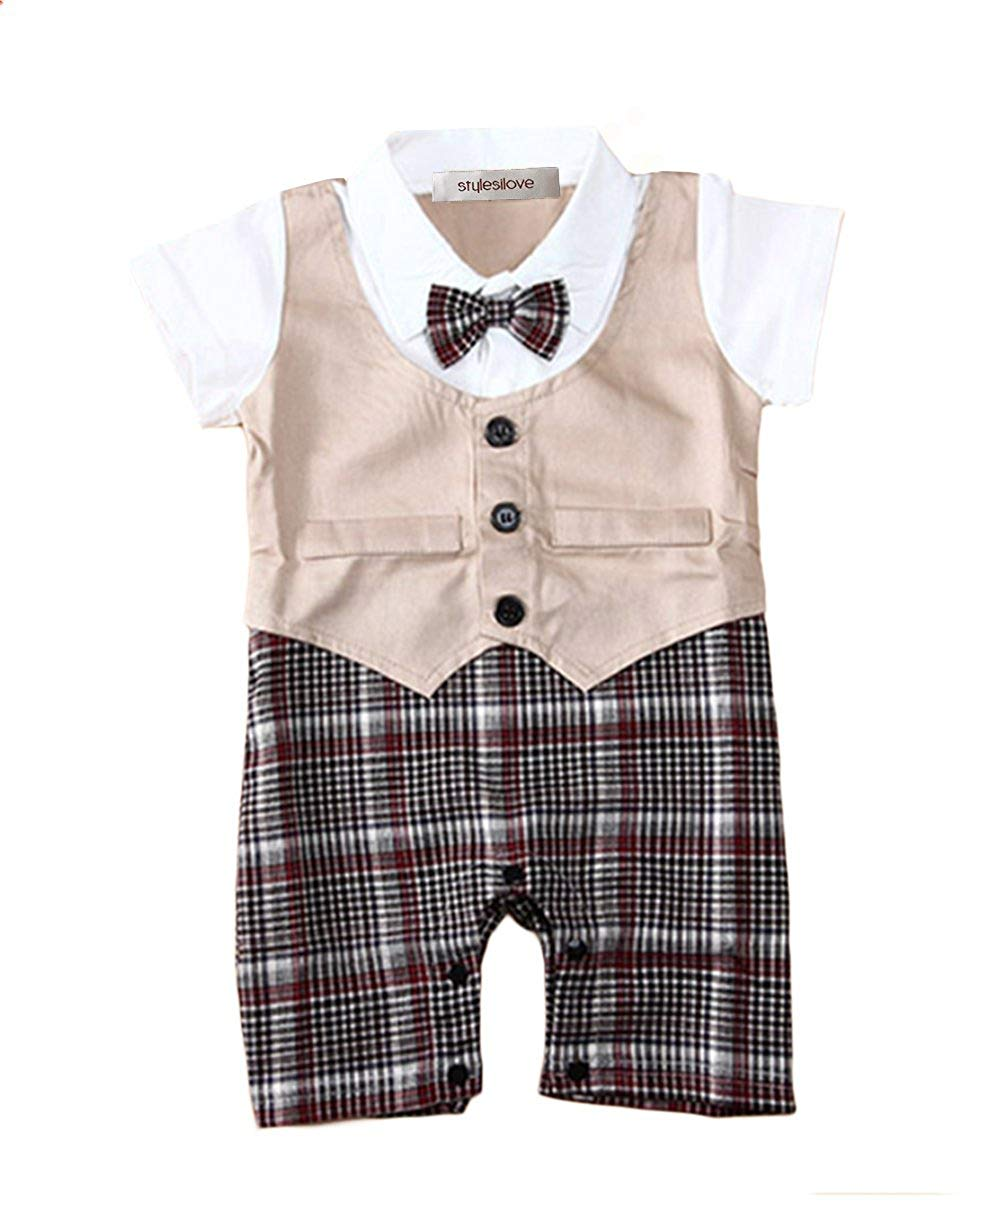 5b485ed79 Get Quotations · stylesilove Baby Boy Checkered Formal Wear Overalls Romper  Onesie